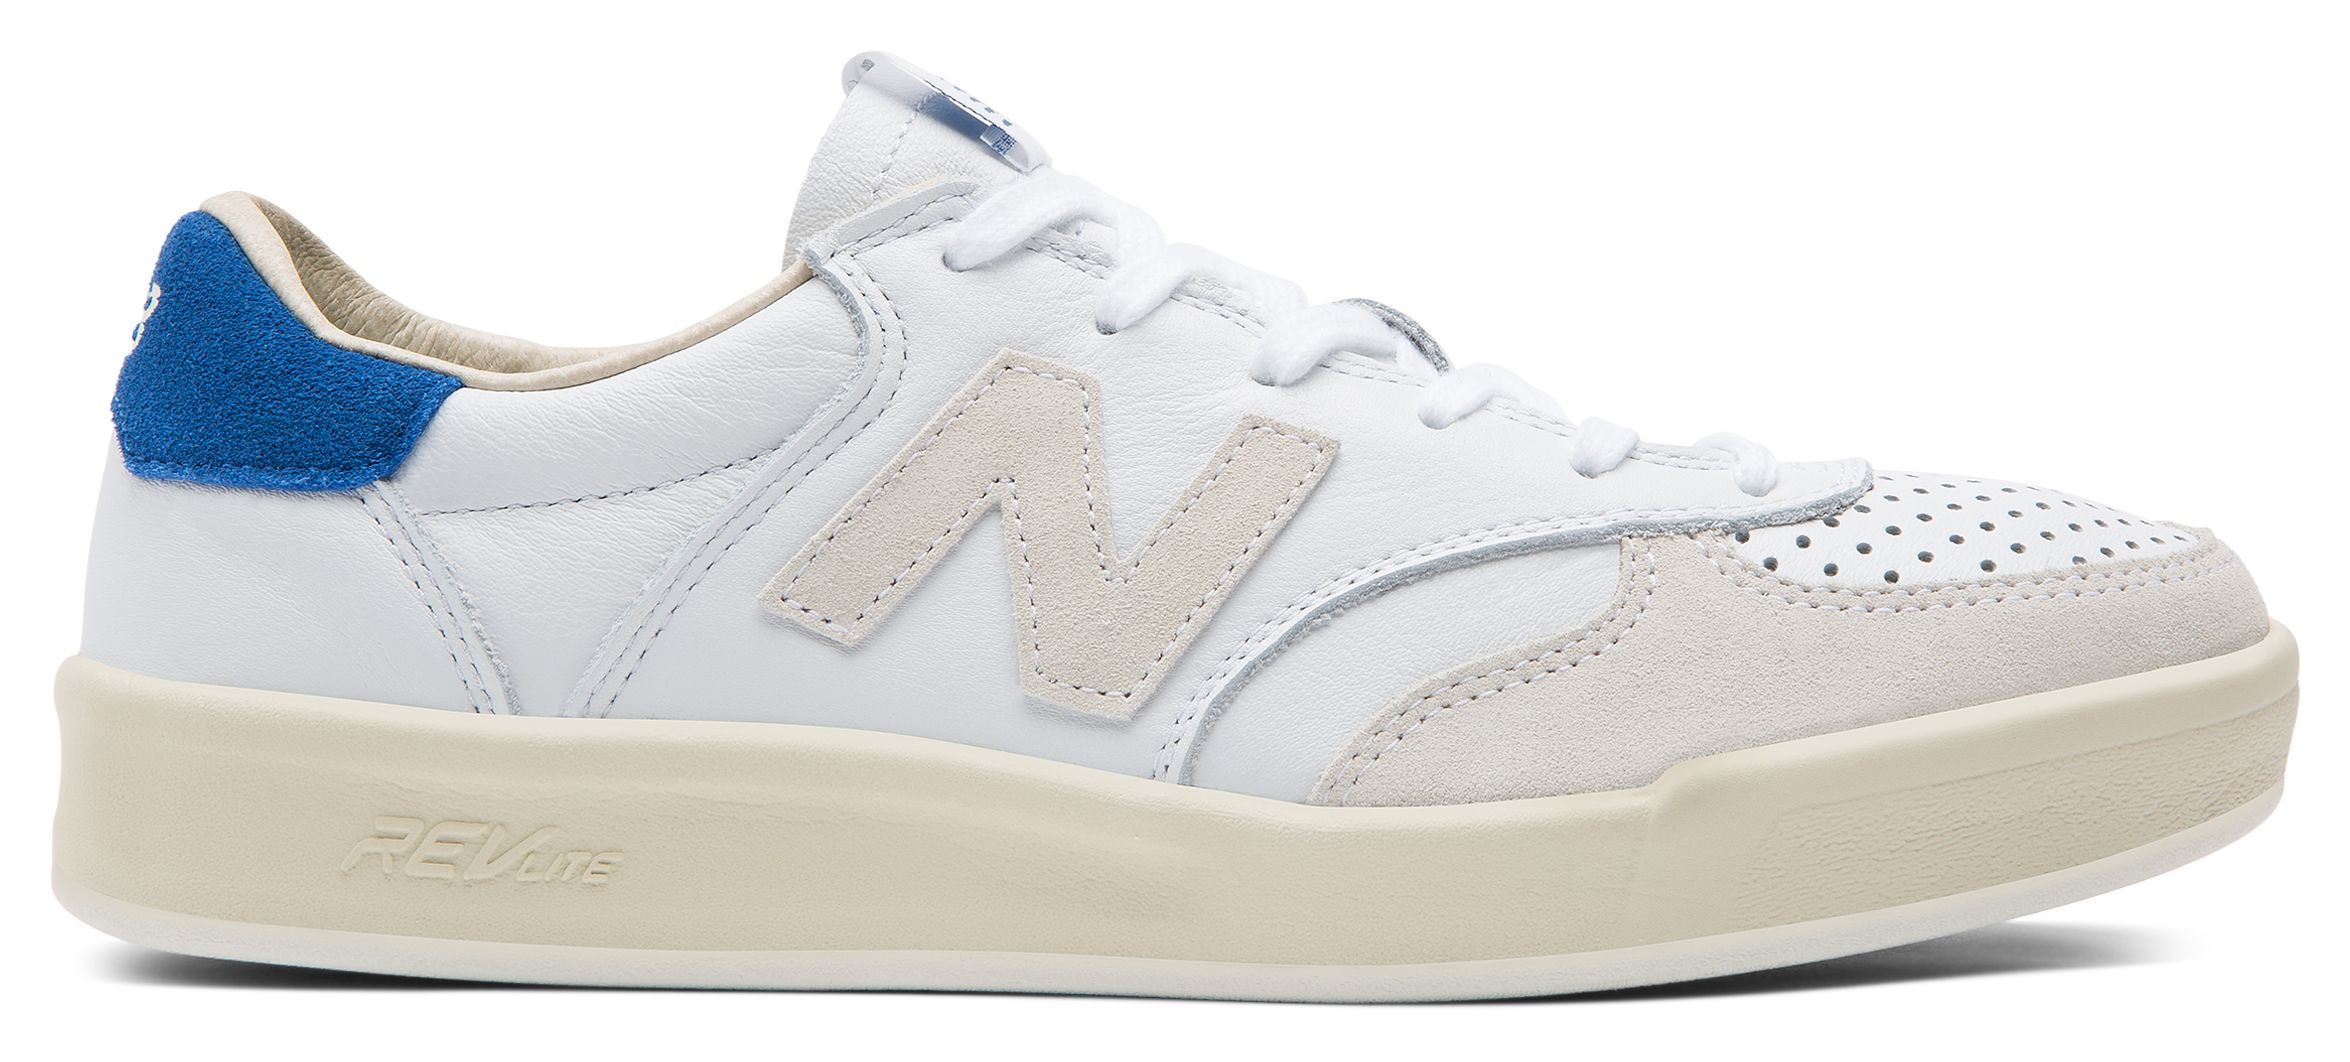 NB 300 Leather, Plaster White